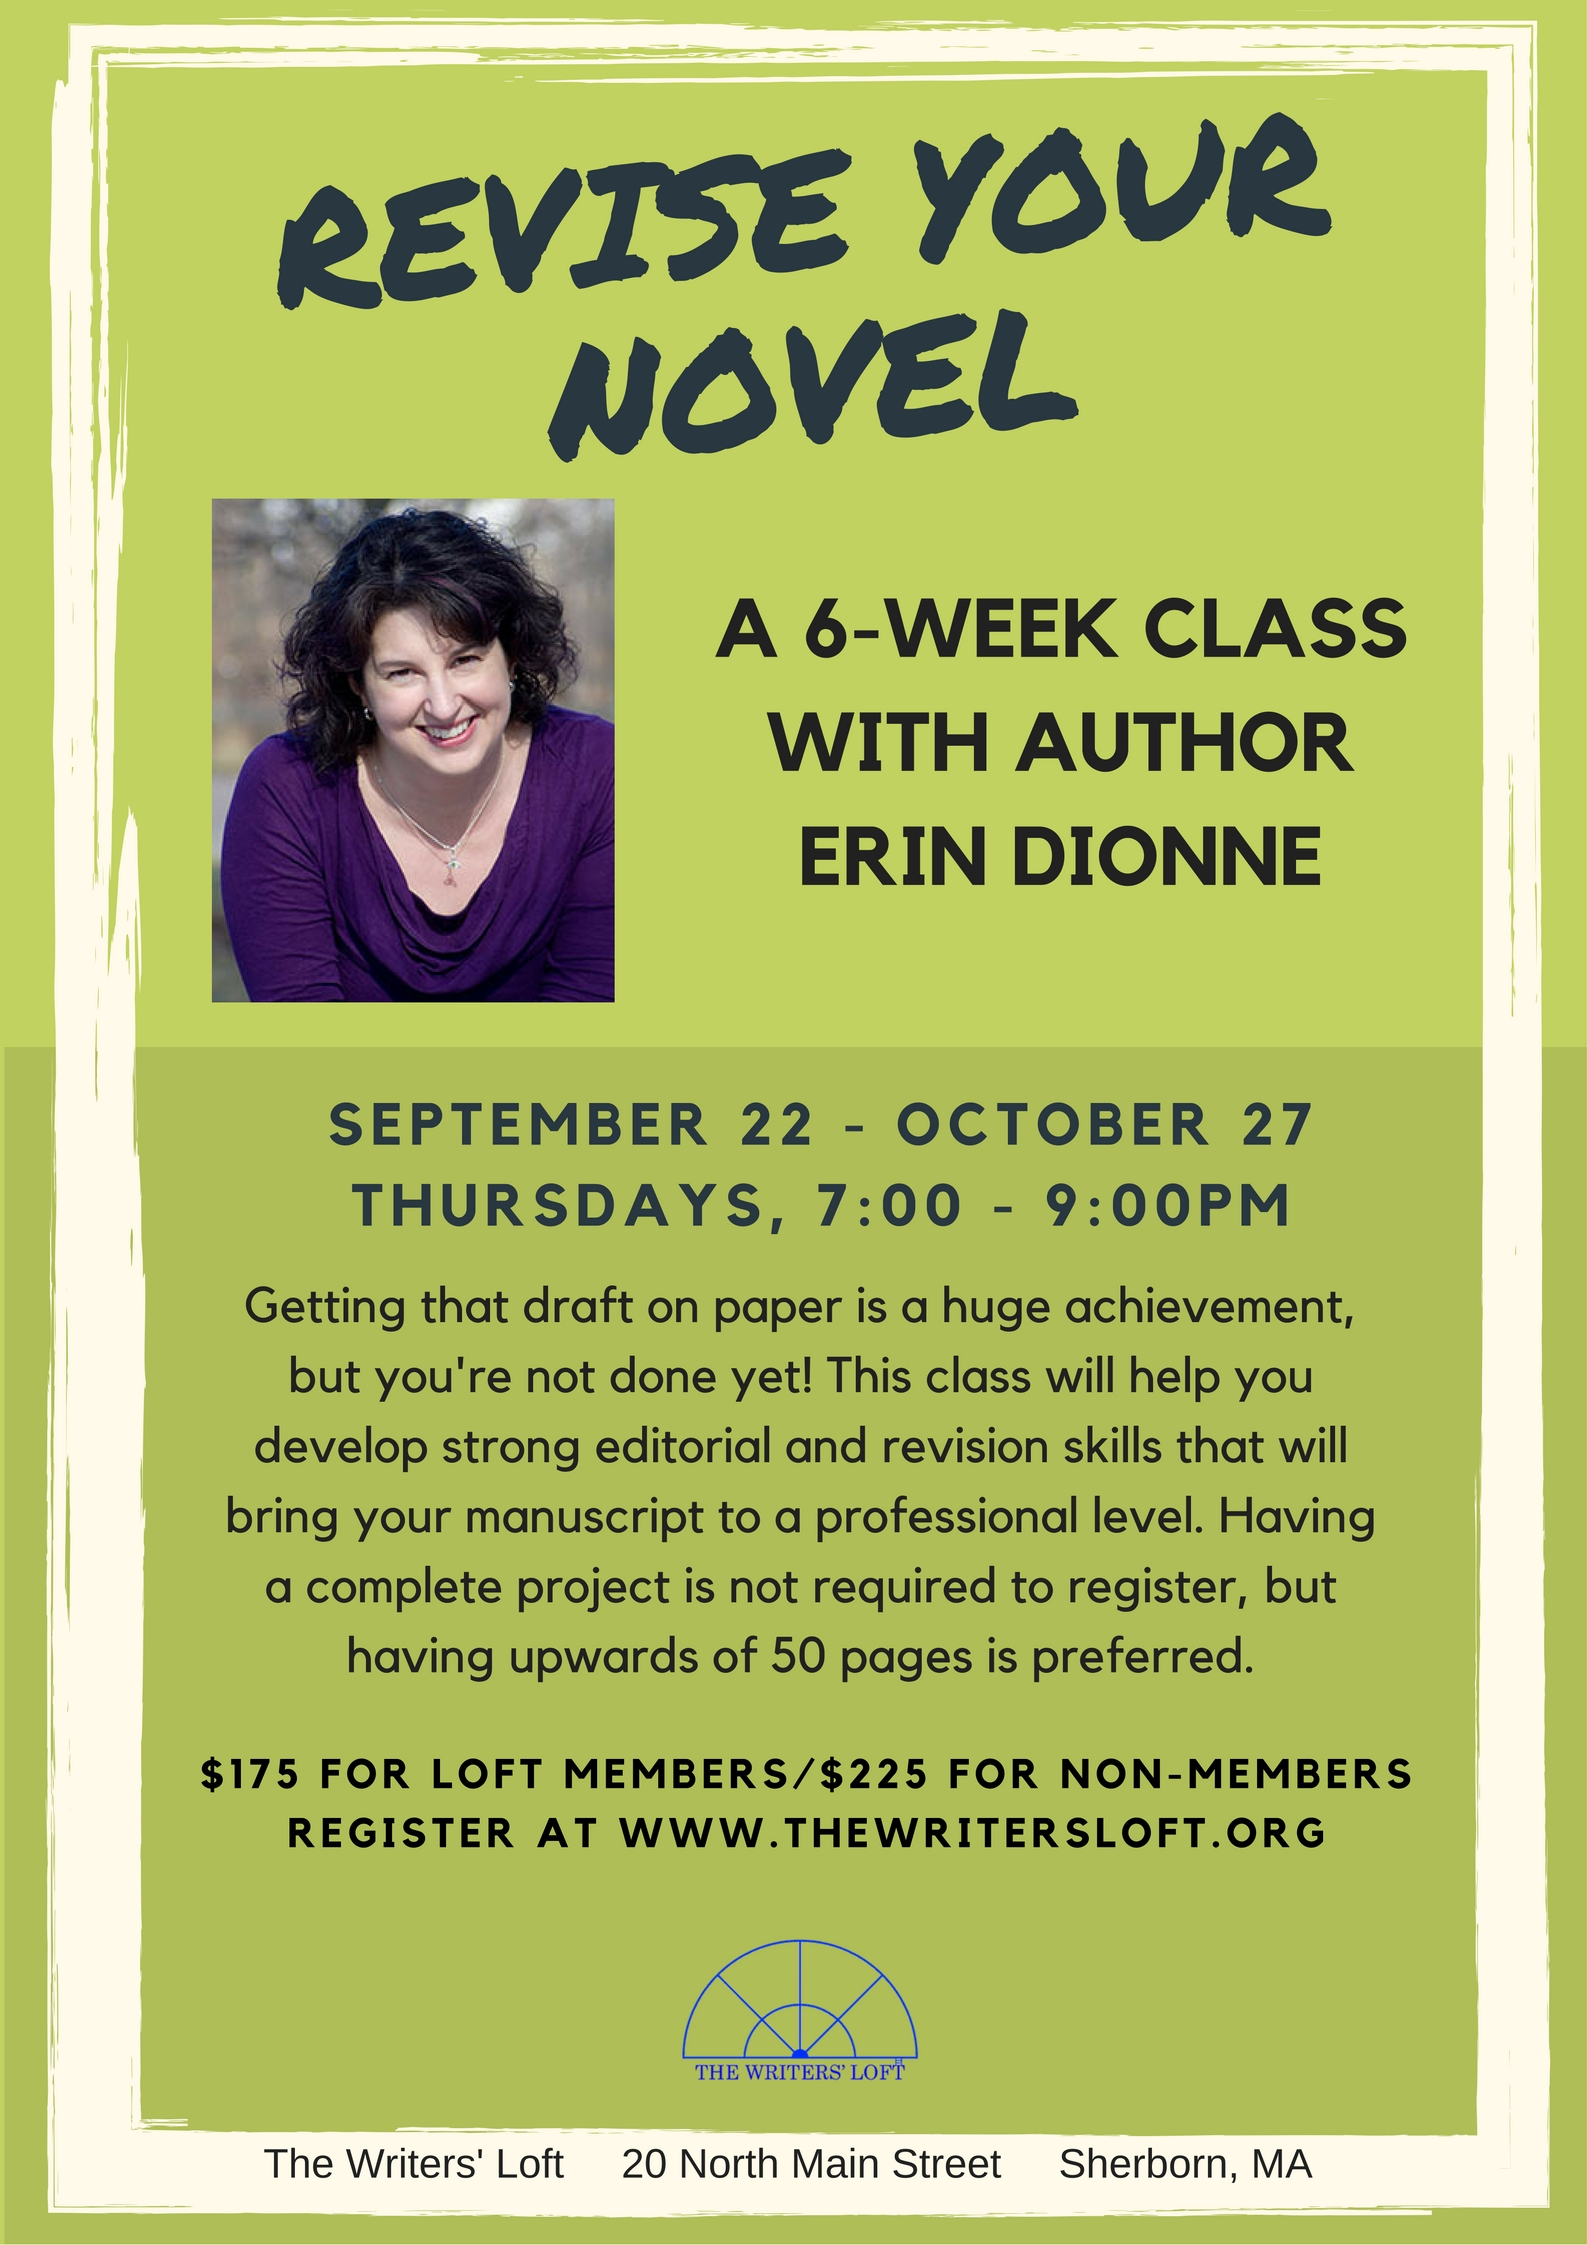 2016-09 Dionne Revise Your Novel Flyer